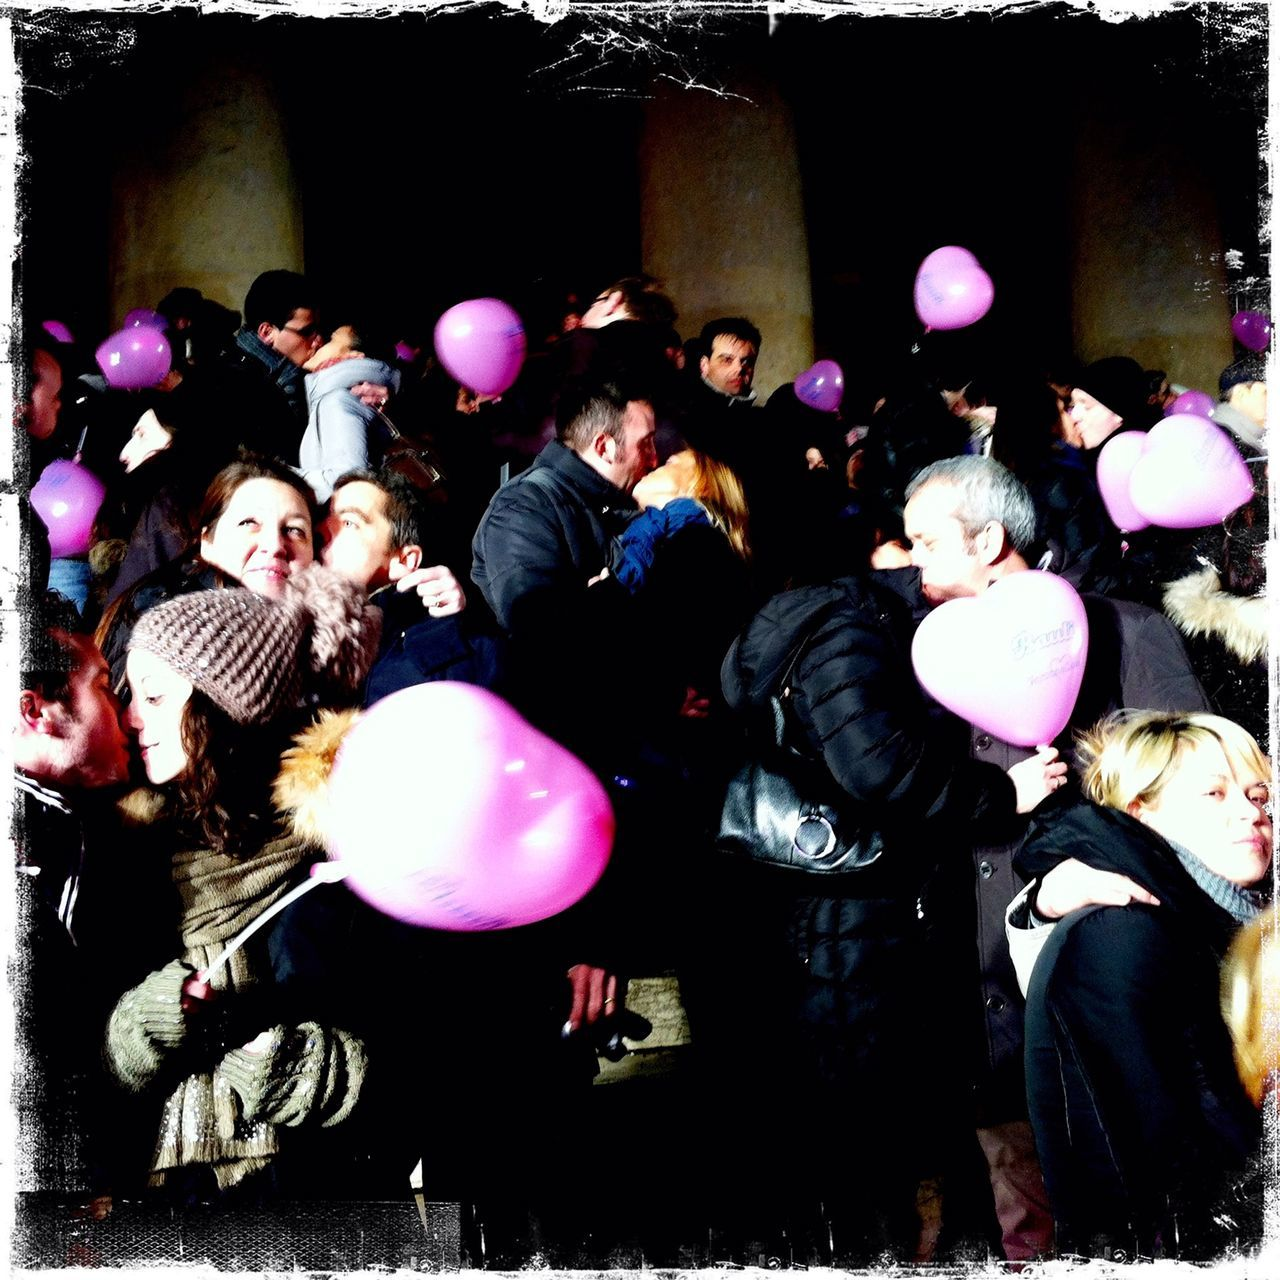 balloon, fun, real people, enjoyment, celebration, large group of people, men, young women, performance, togetherness, women, friendship, young adult, happiness, crowd, indoors, musician, people